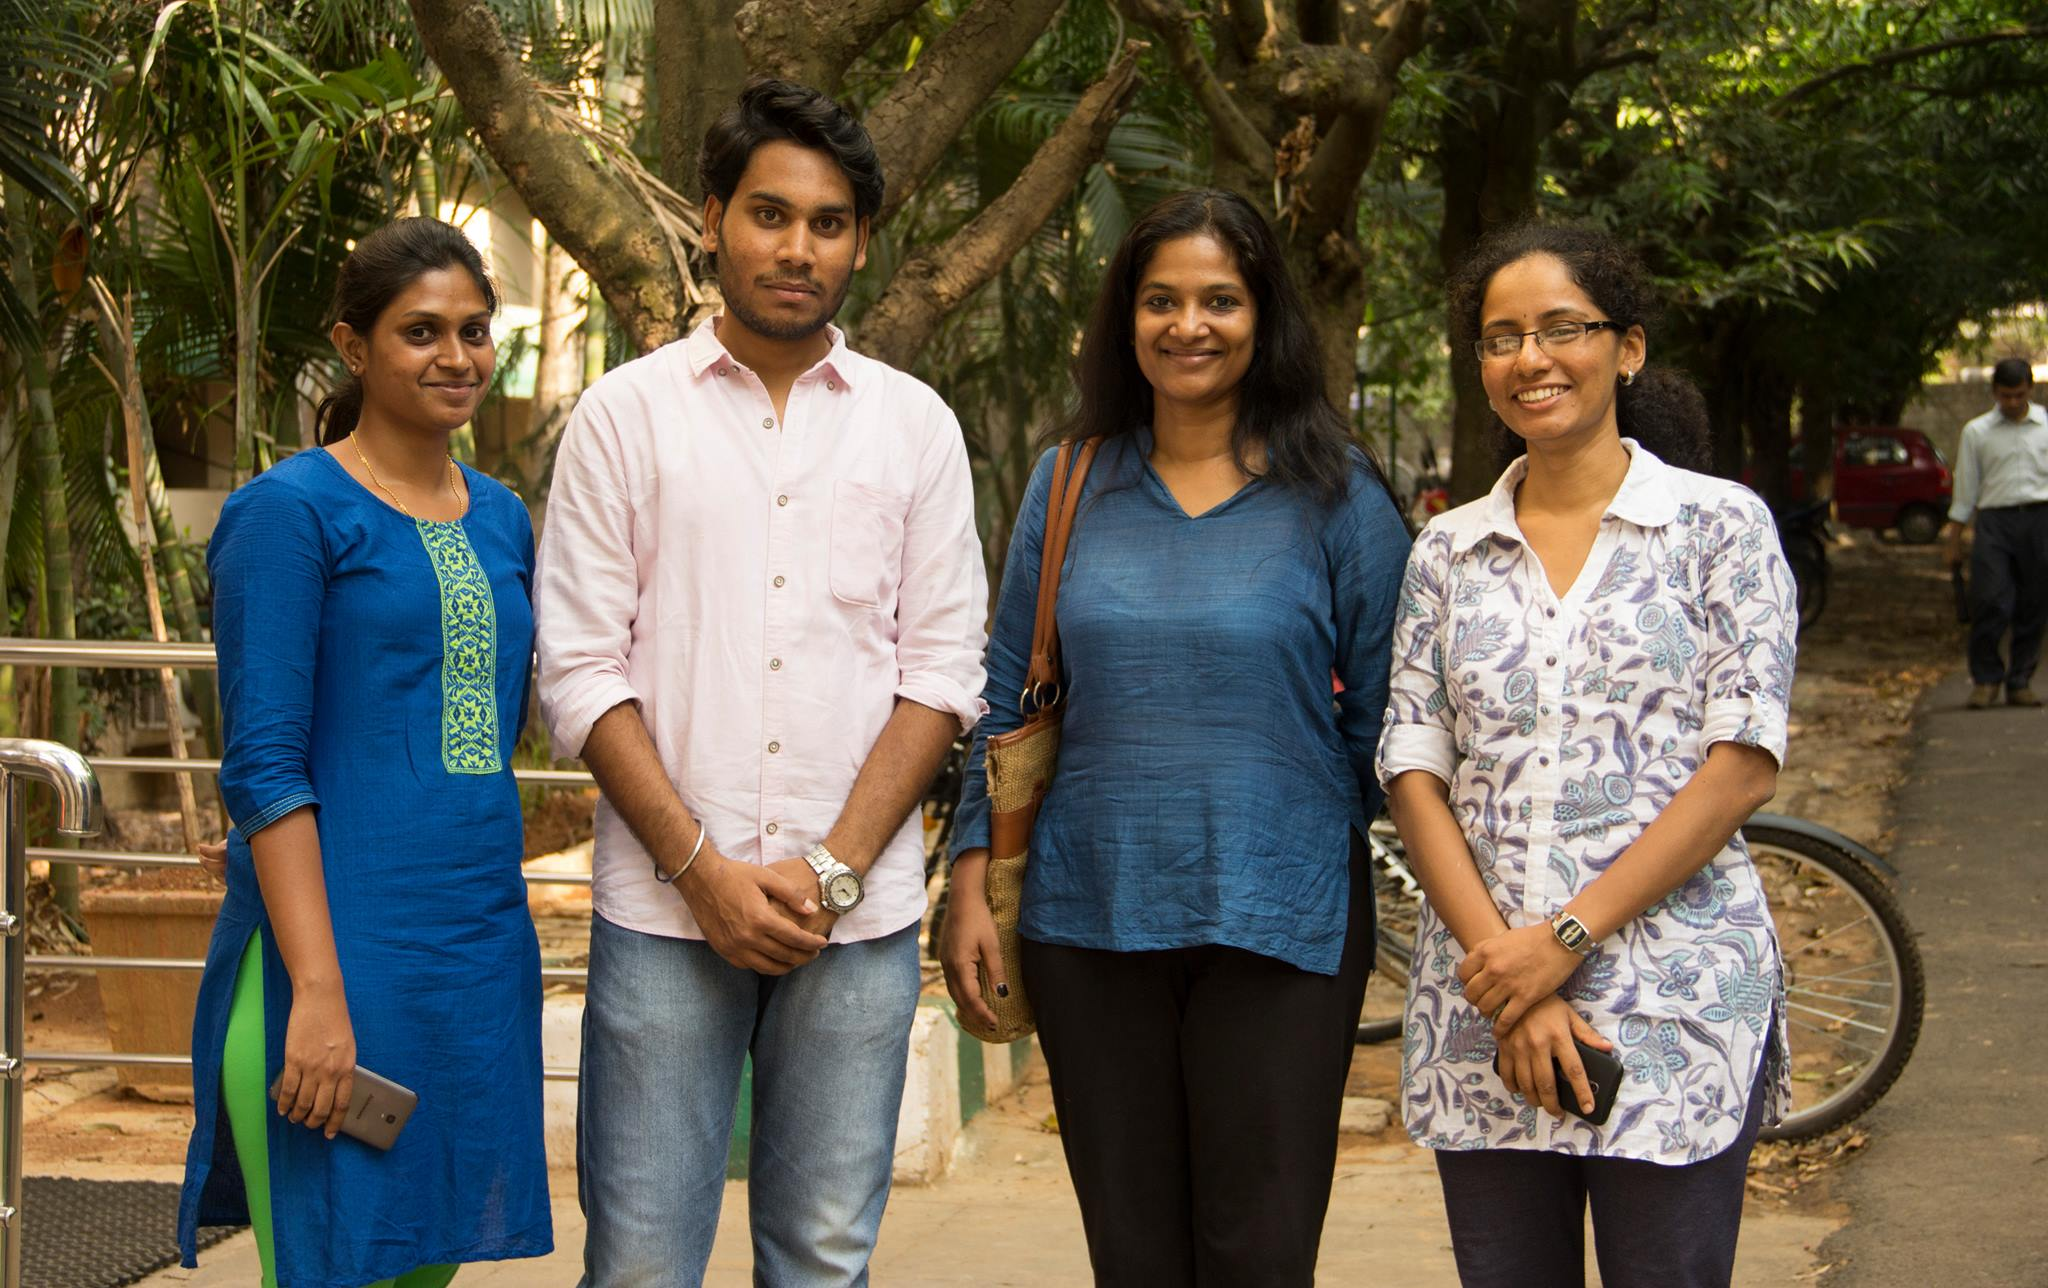 Left to right: Pooja Bai, Harish N, Pallavi MD and Sahana Venugopal at Indian Institute of Science, Bengaluru